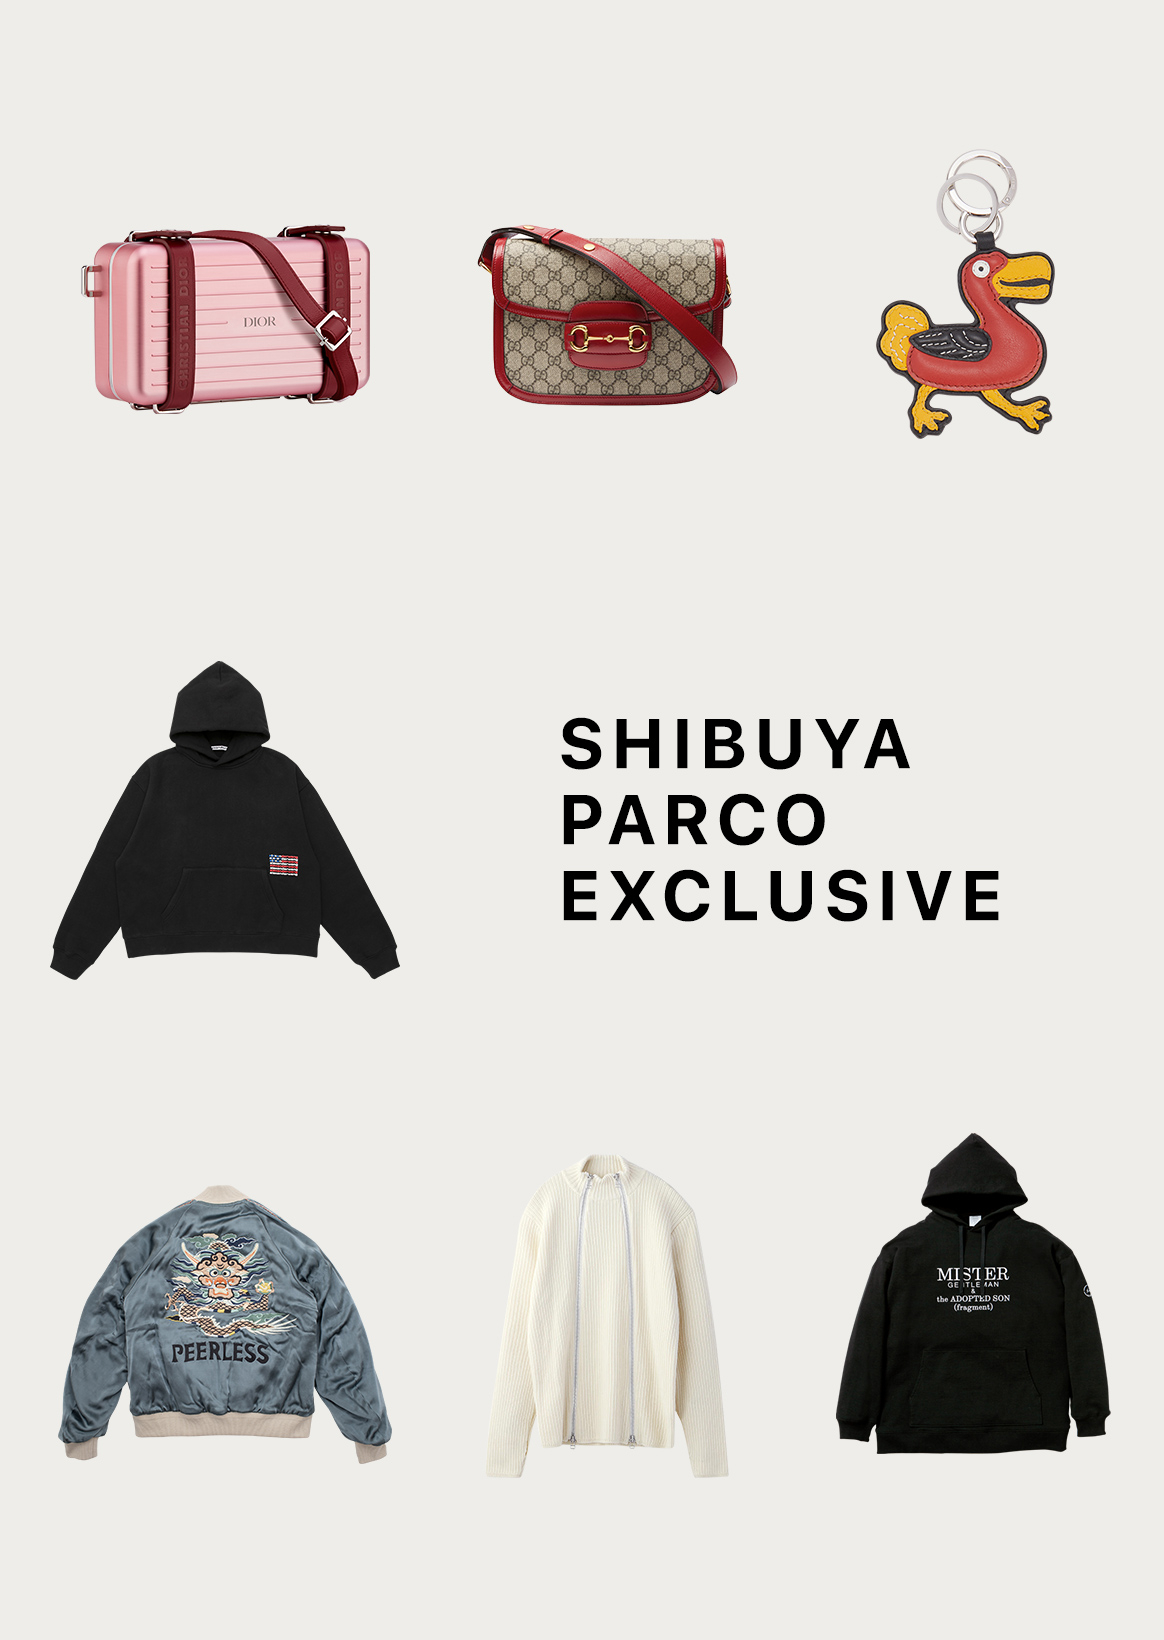 Shibuya PARCO limited sale & precedence release item | SHIBUYA PARCO EXCLUSIVE